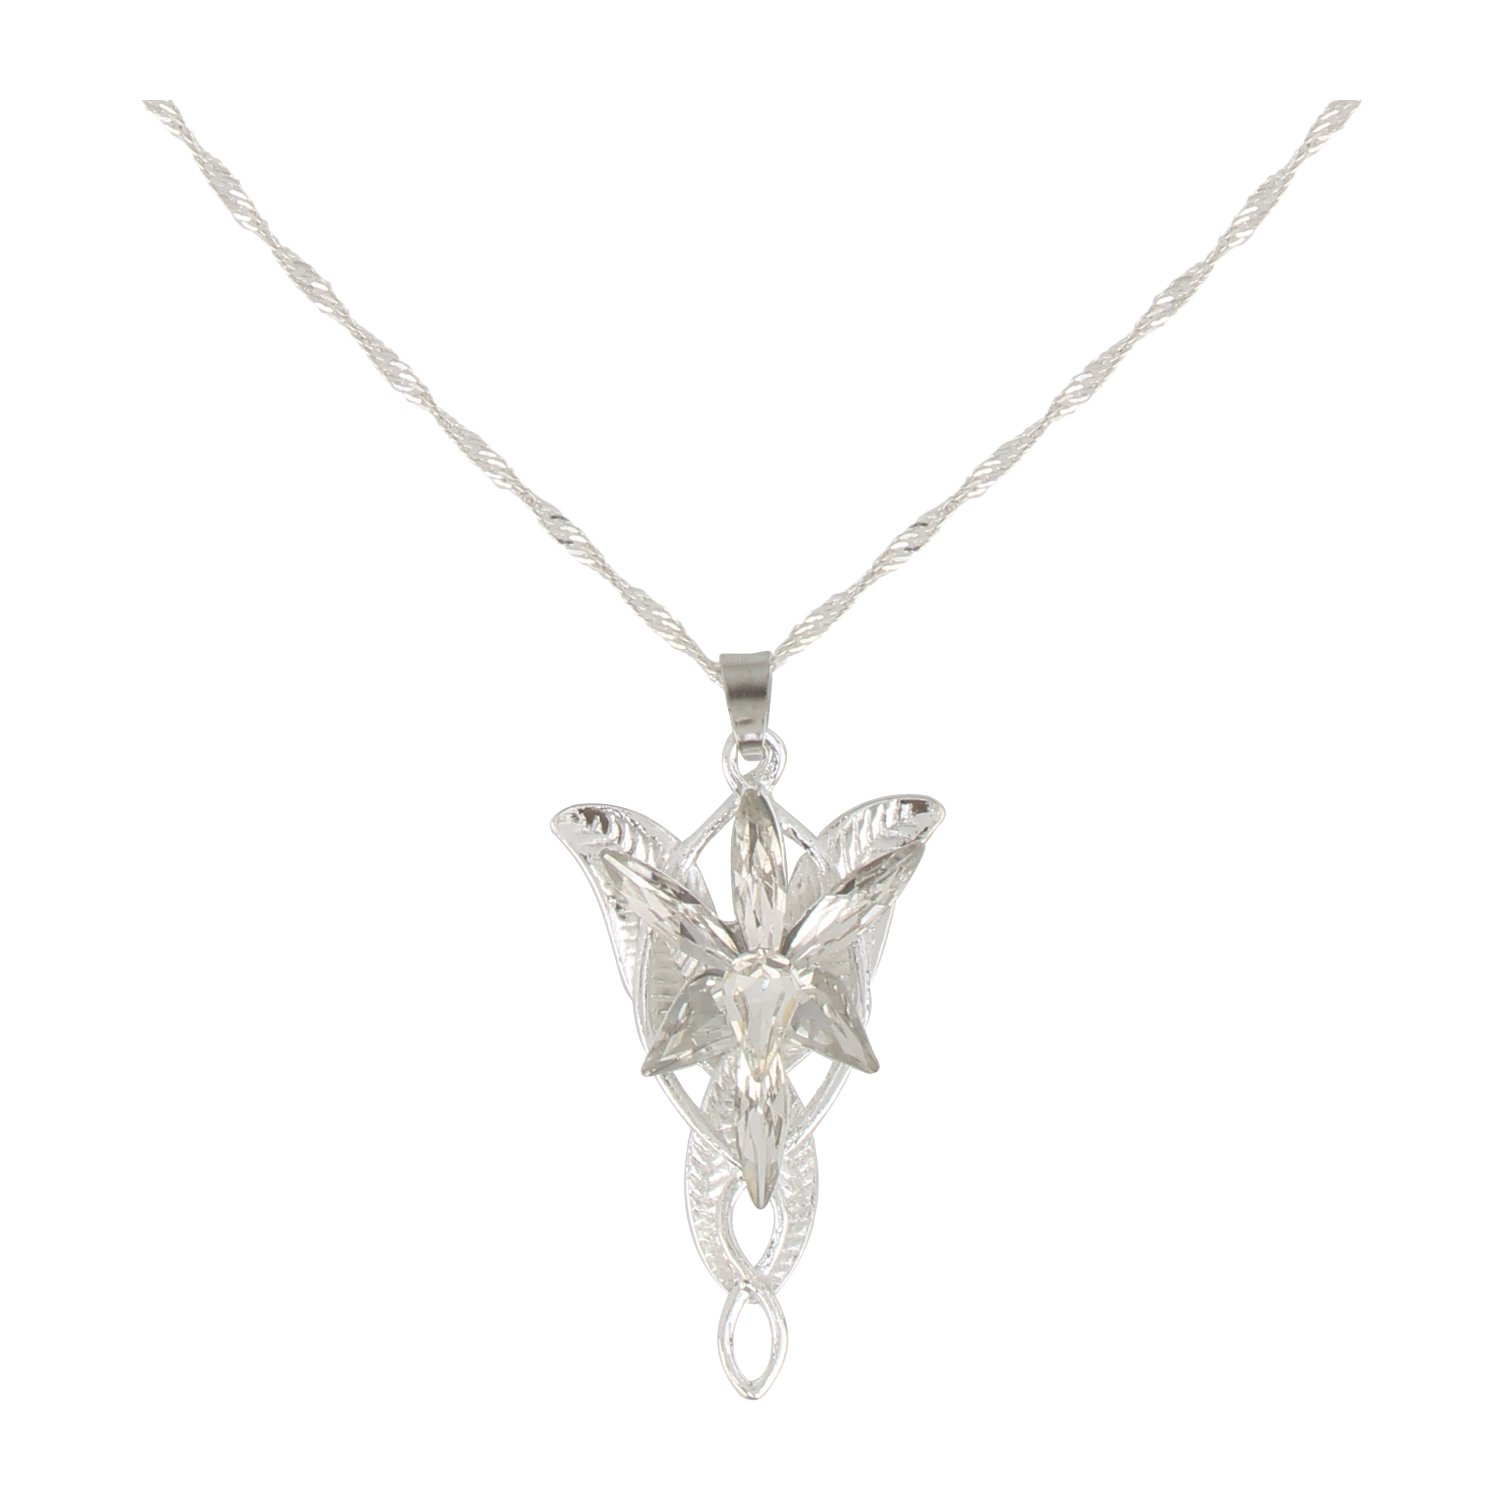 Accessorisingg Lord of The Rings Evening Star Princess Pendant [PD147] Arendelle Pendant147